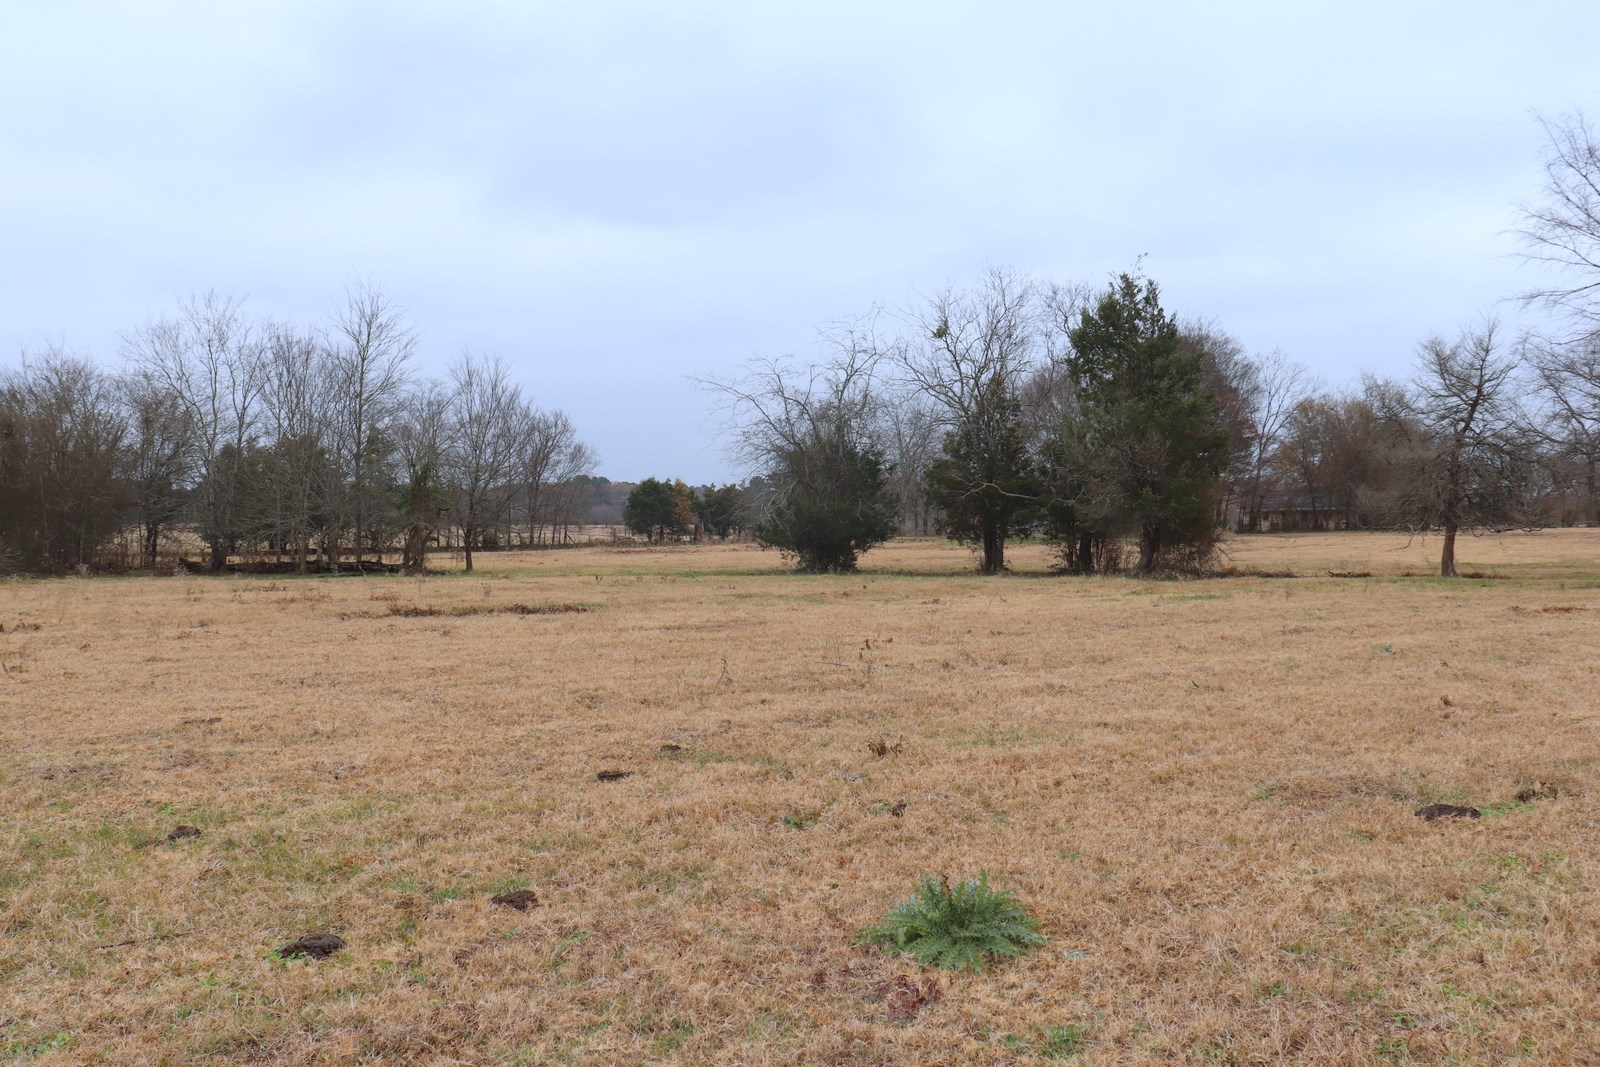 EAST TEXAS ACREAGE - QUITMAN, TX - WOOD COUNTY LAND FOR SALE